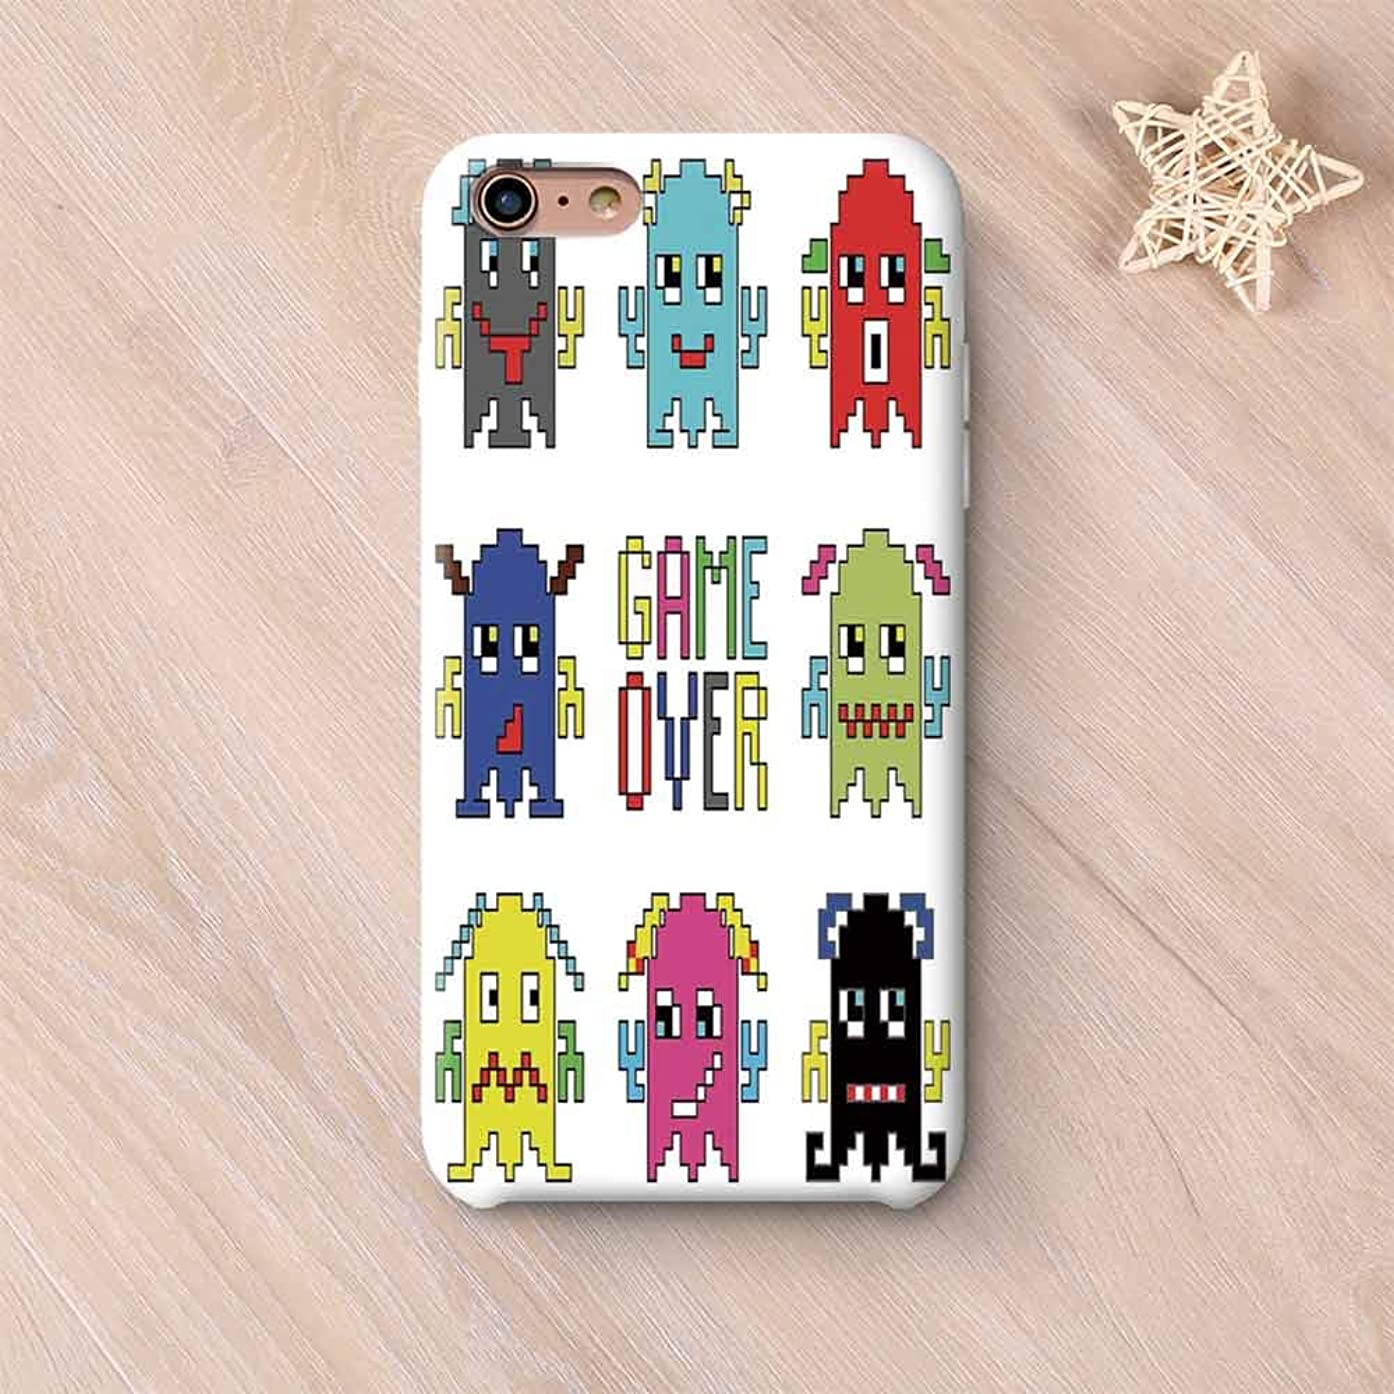 90s Non Fading Compatible with iPhone Case,Pixel Robot Emoticons with Game Over Sign Inspired by 90s Computer Games Fun Artprint Compatible with iPhone 6 Plus / 6s Plus,iPhone 6 Plus / 6s Plus